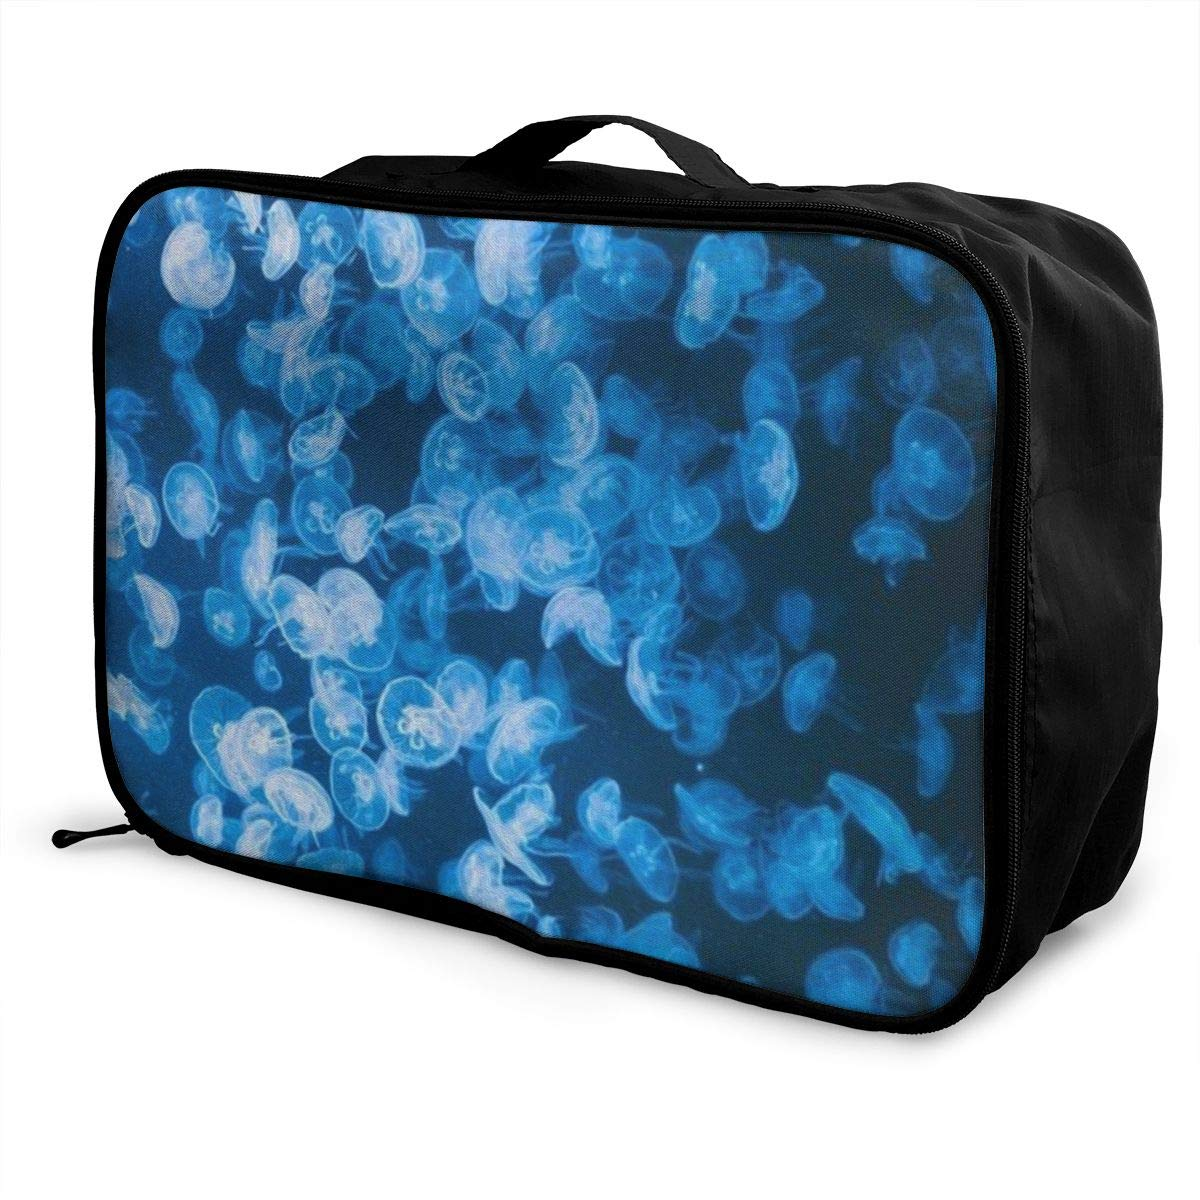 WONDERMAKE Deer and Mushroom Travel Duffel Bag Attach to Suitcase Handle Lightweight Business Bags Nylon Luggage Duffel Bag Gym Holiday Overnight Carry On Bag Tote Luggage Bag